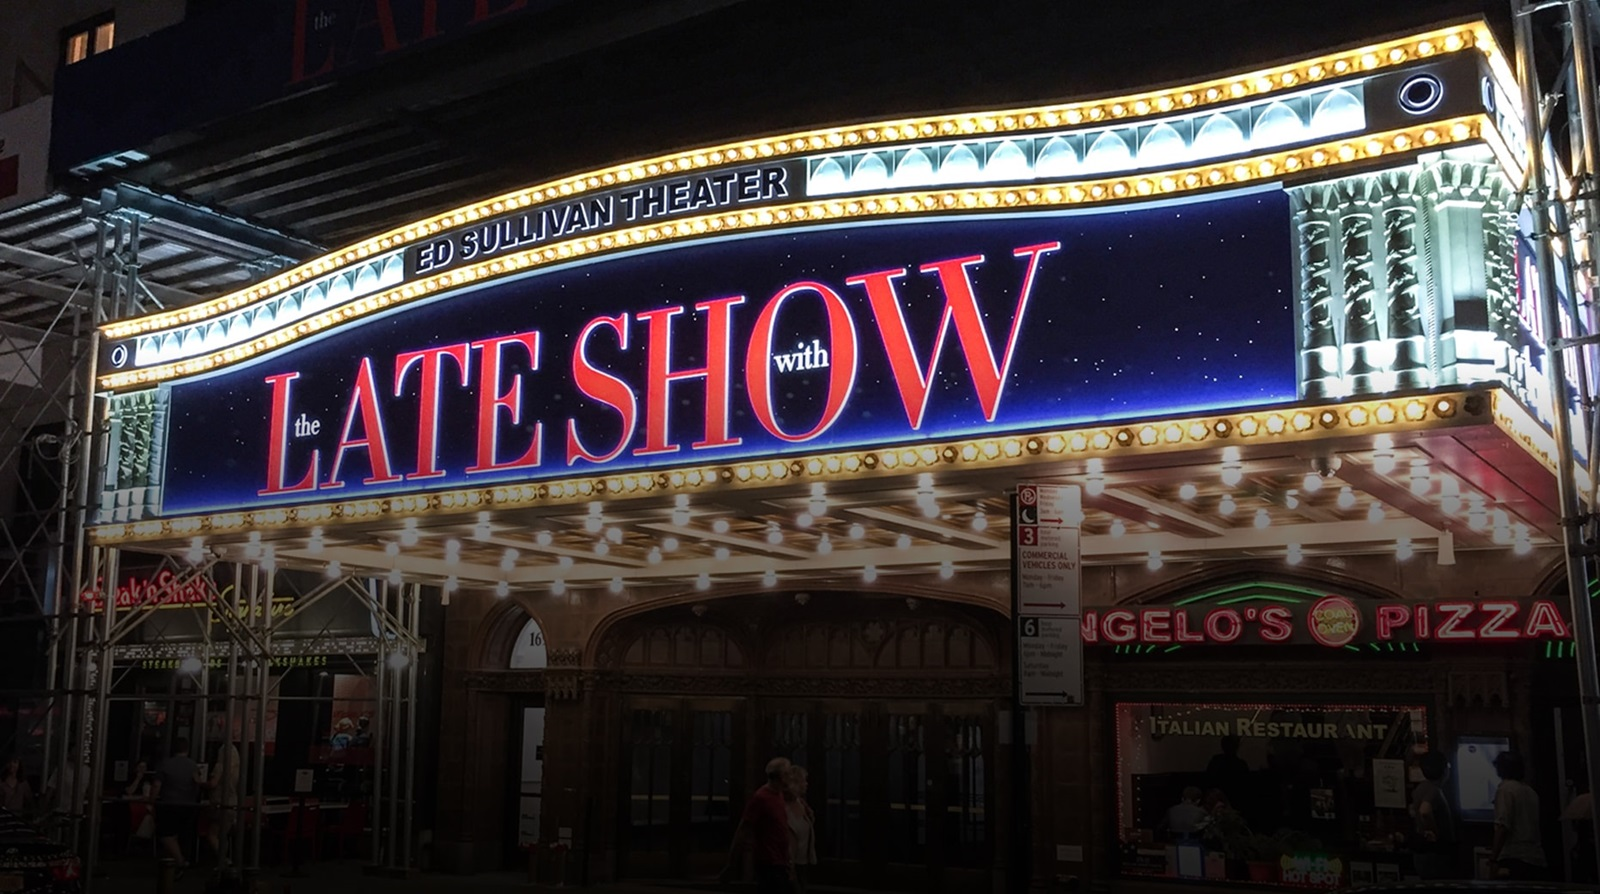 Late Show Hero Theater